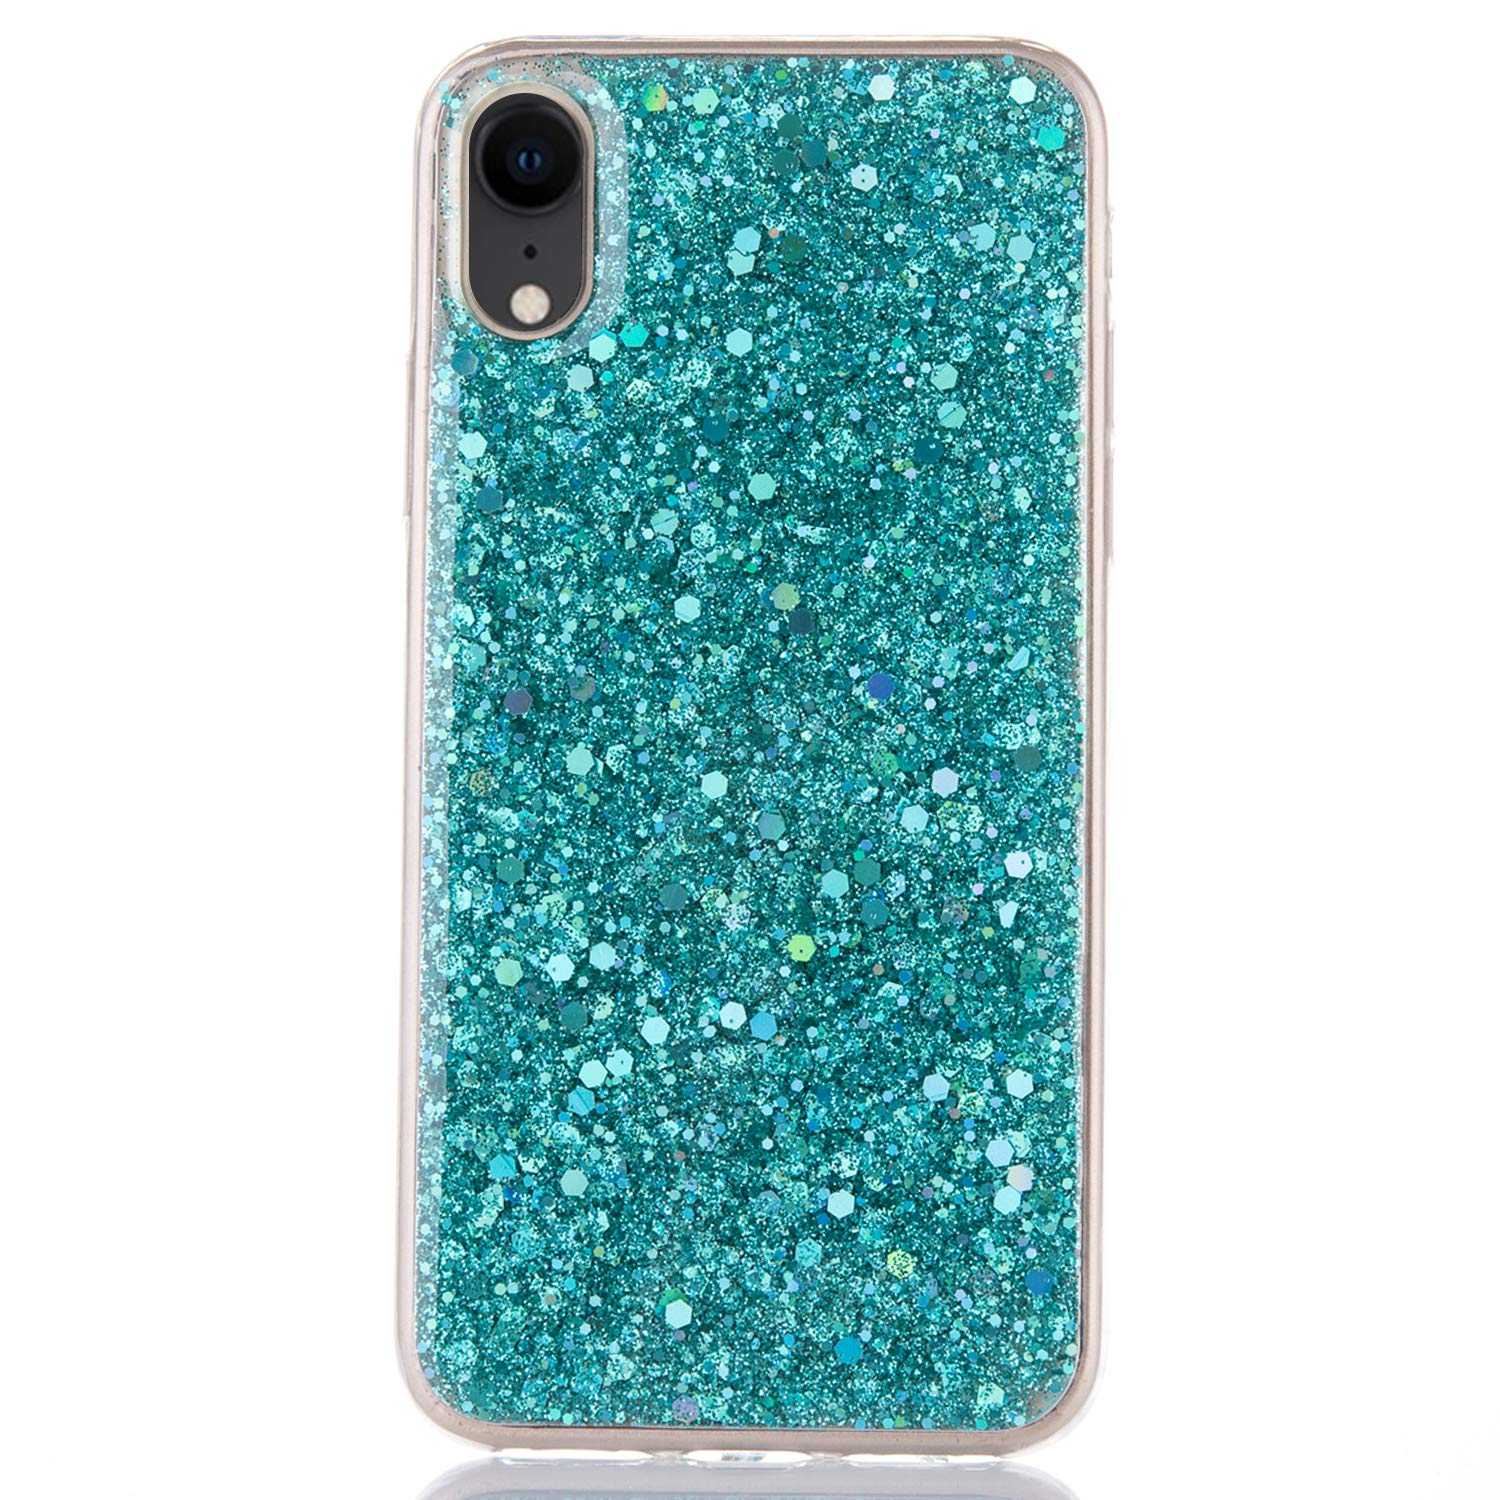 MoreChioce compatible avec Coque iPhone XR /Étui Silicone Paillette,Ultra Mince Multicolore Amour Transparente Brillant Strass Diamant Anti-Rayures Housse Protecteur TPU Bumper